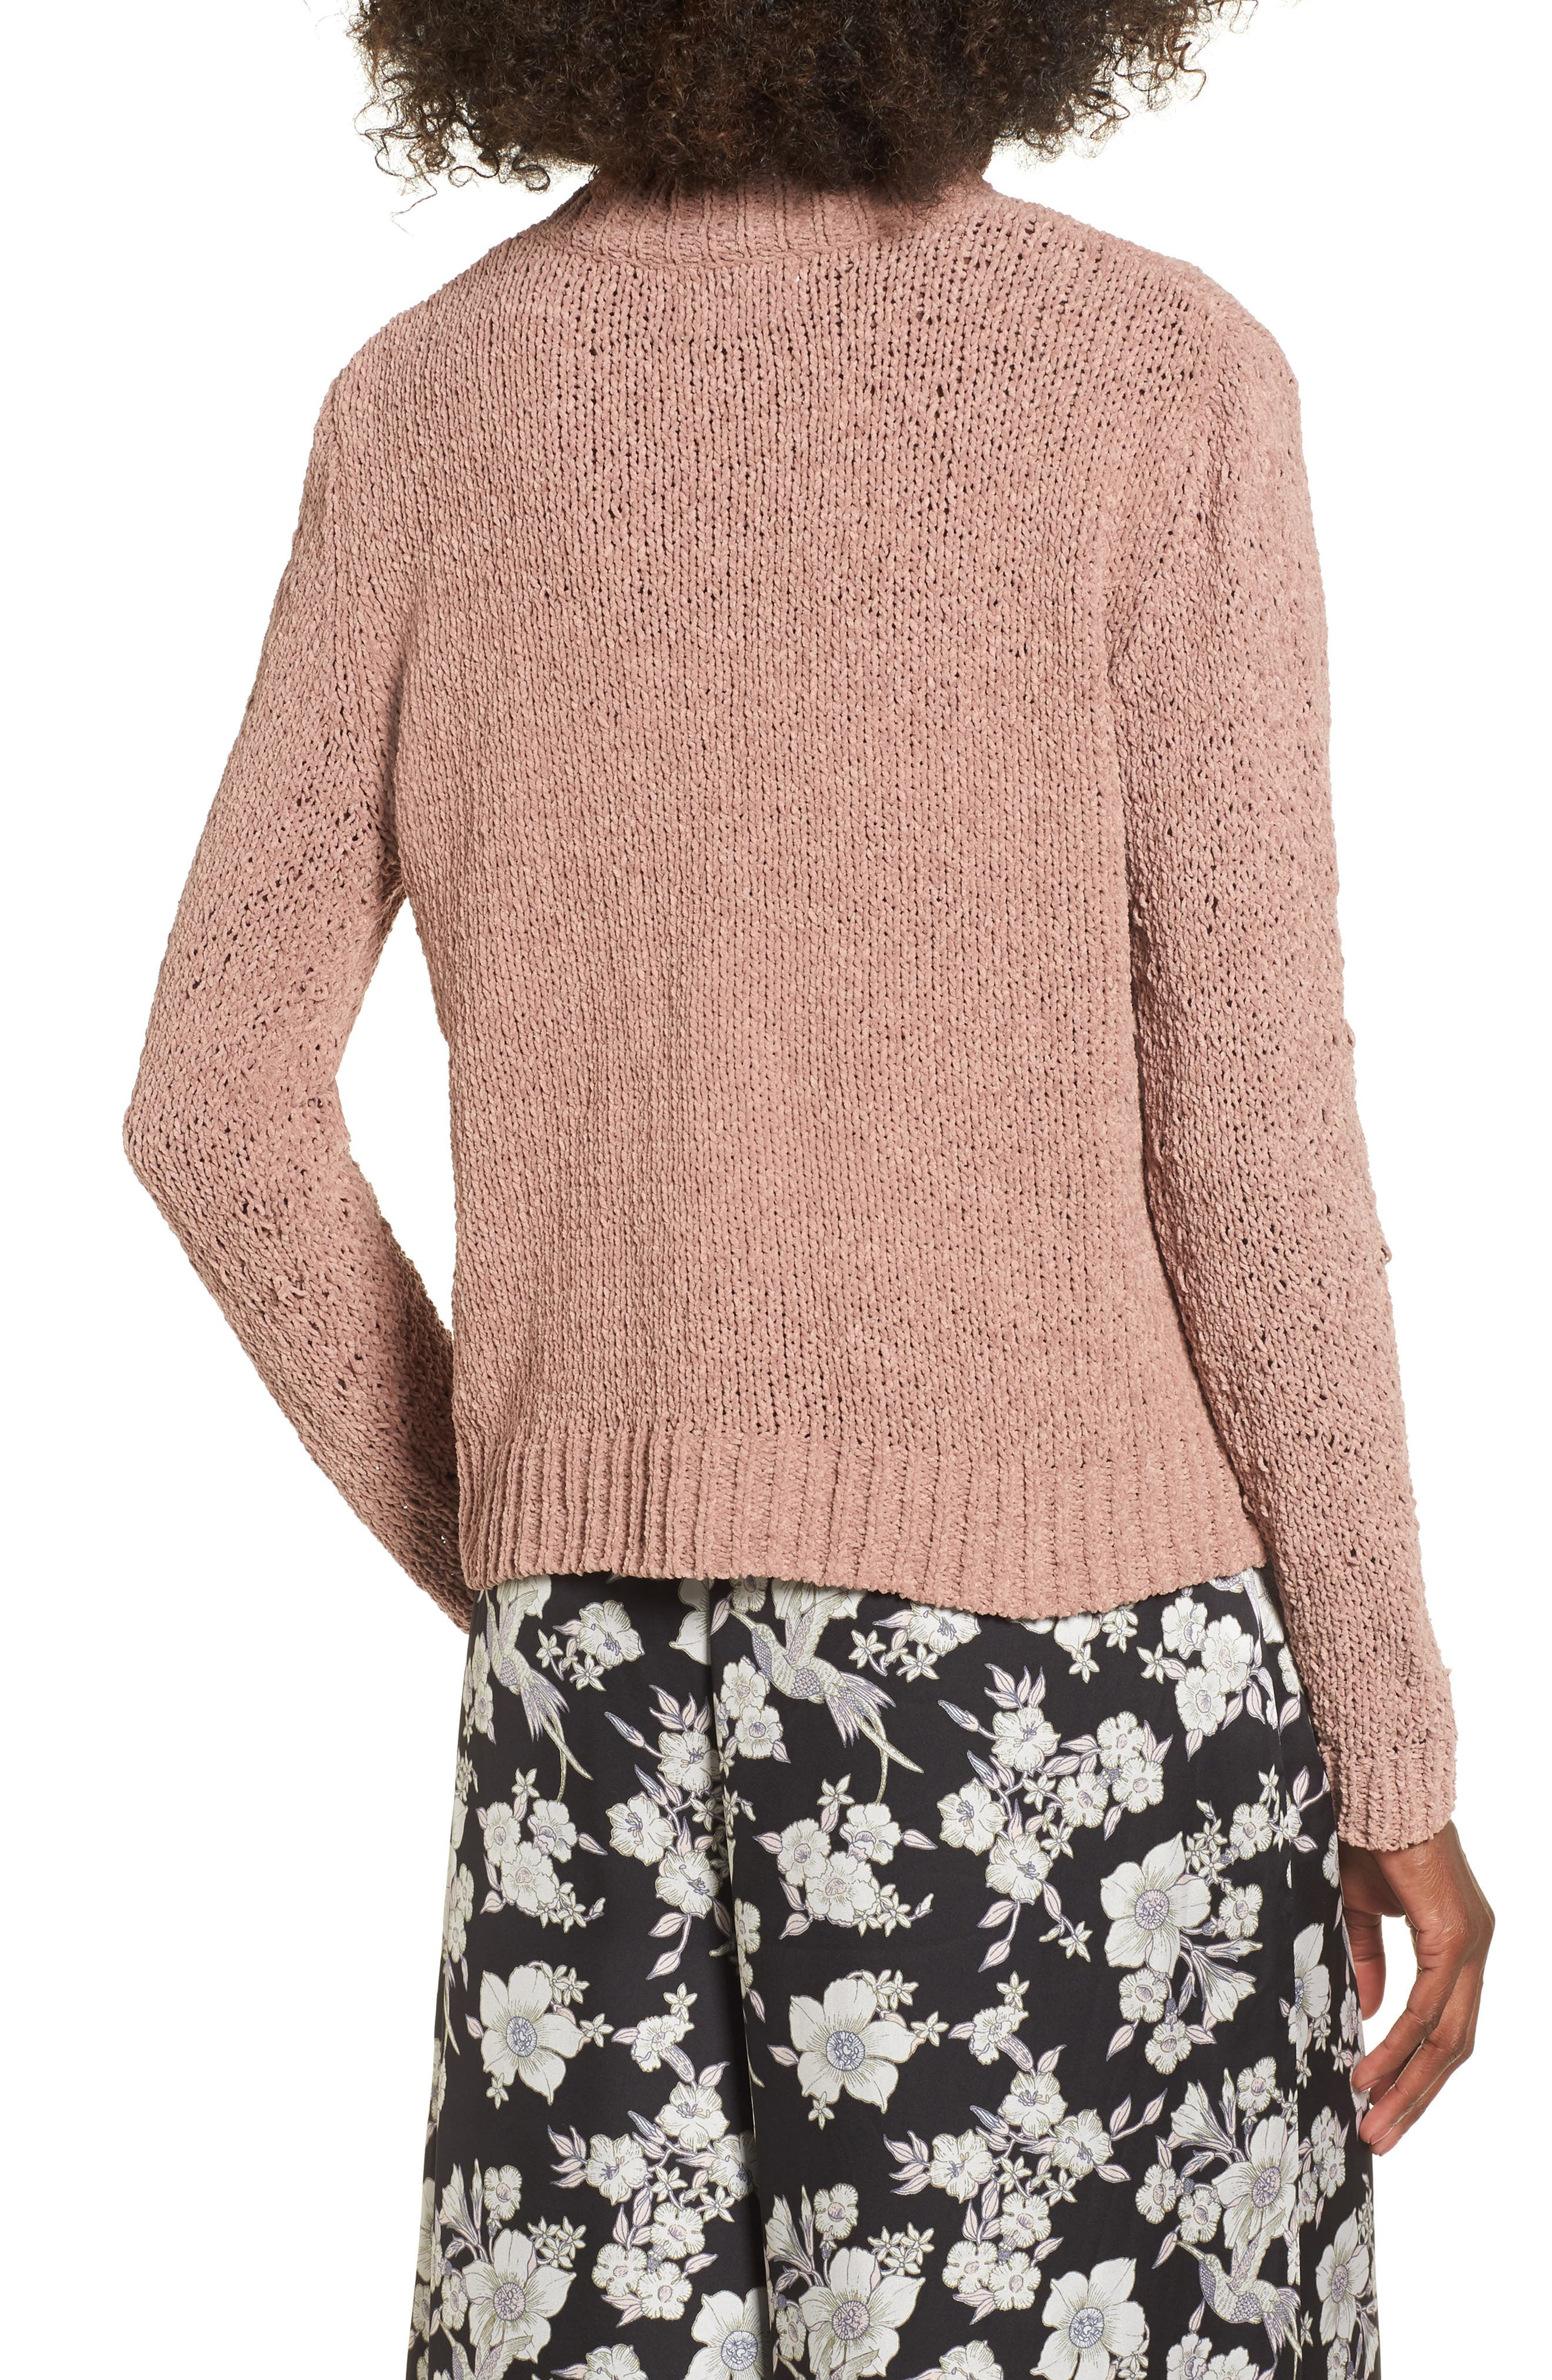 Jolie Chenille Sweater,                             Alternate thumbnail 2, color,                             Mauve